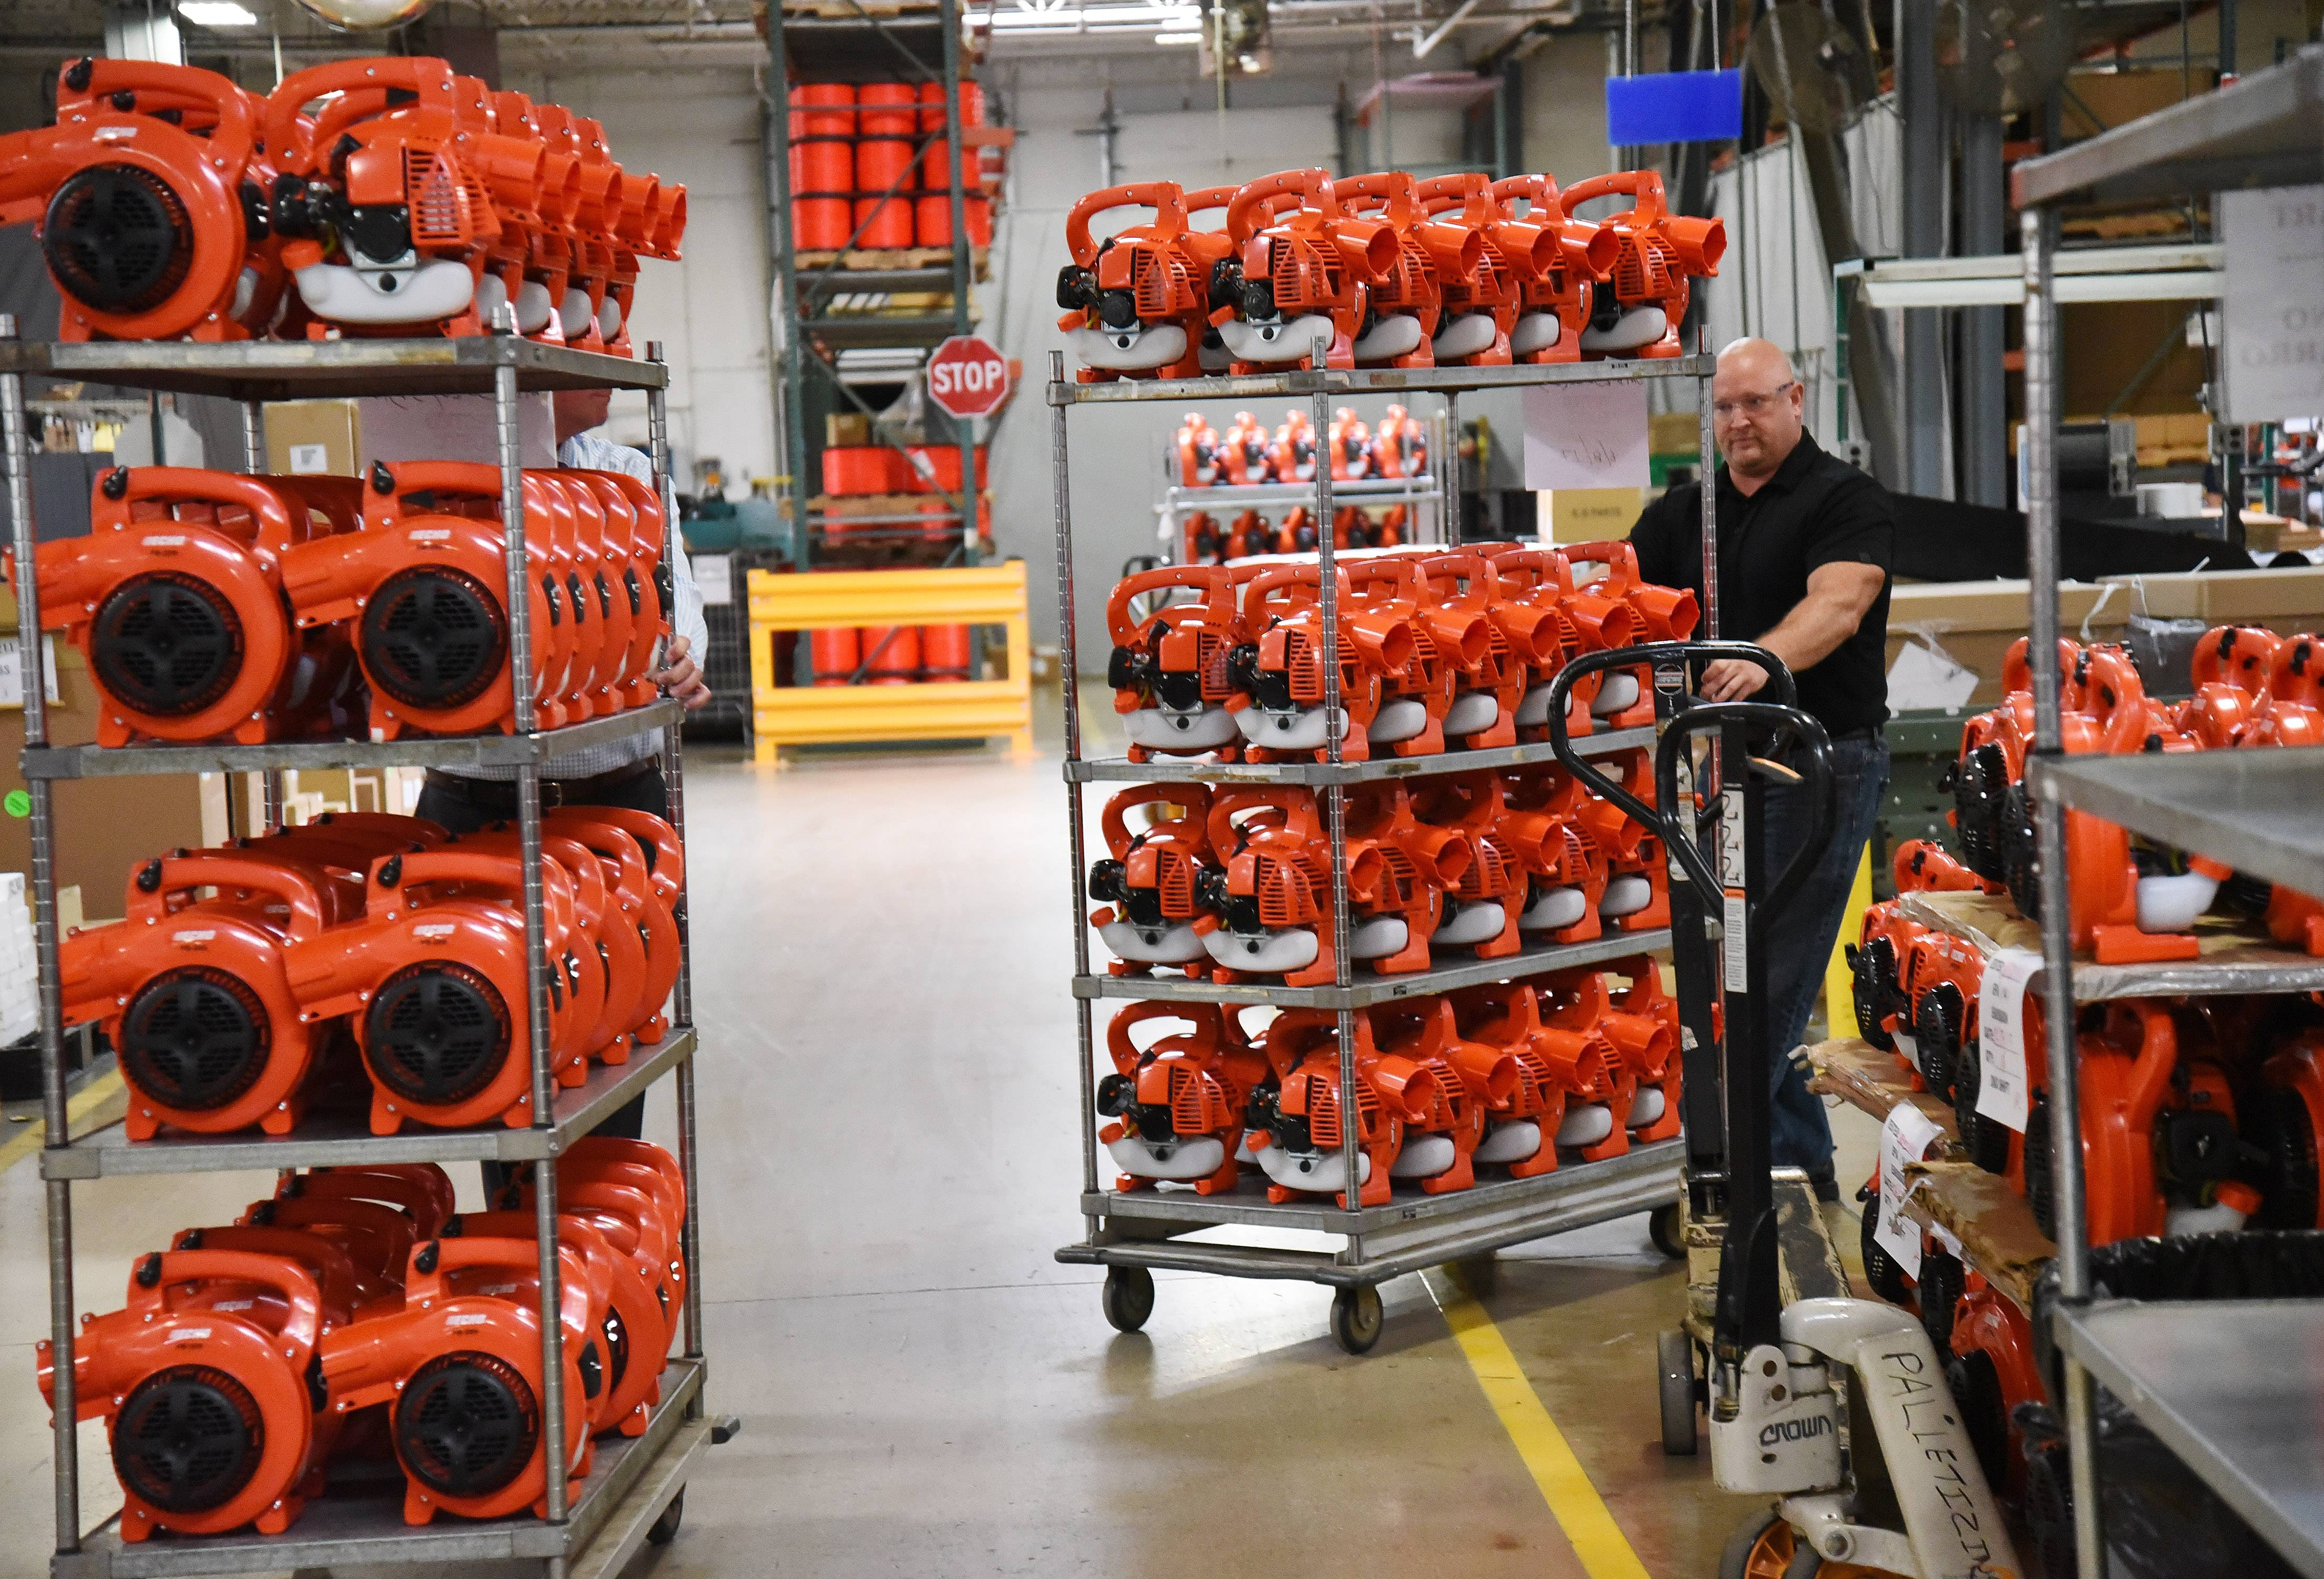 Echo Inc. President Tim Dorsey, left, and Ryan Ladley, senior director of operations, move racks of leaf blowers at Echo Inc., in Lake Zurich.